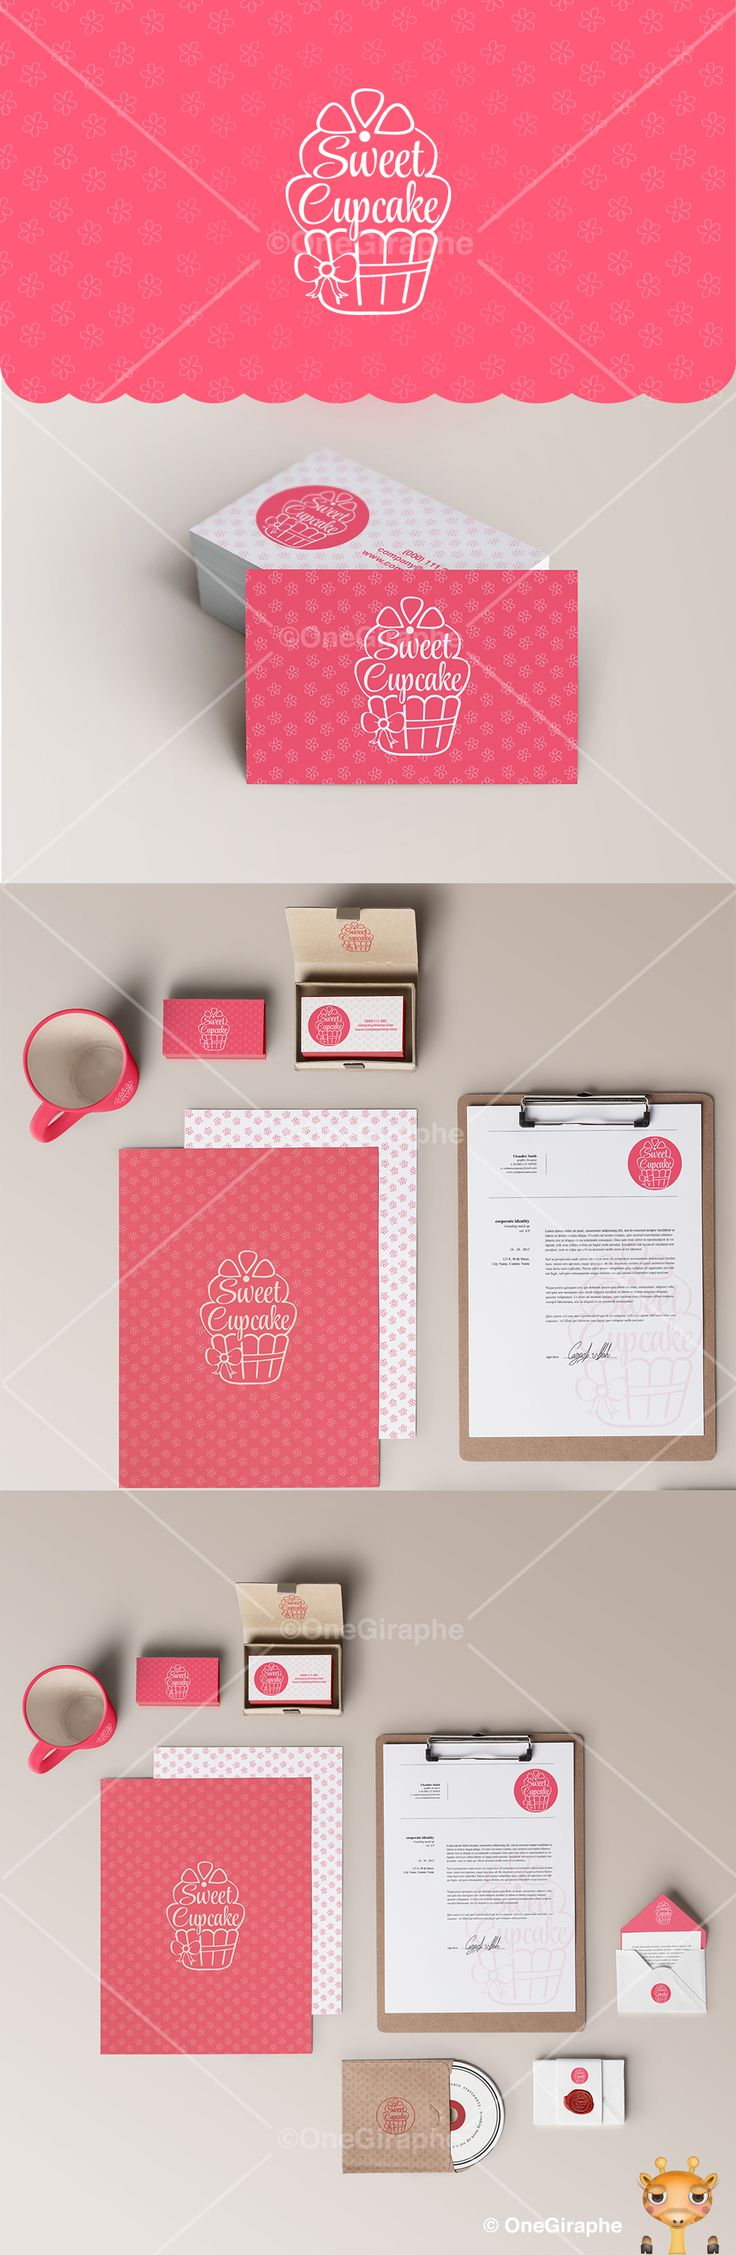 Branding for Cake, Cupcake & Bakery for sale! PRICE : $600 - Logo ( color variations and black / white ) + business card design ( 2 sides ) as bonus. Format files: eps, pdf, png, jpg or any other at request. Order now at: onegiraphe@gmail.com